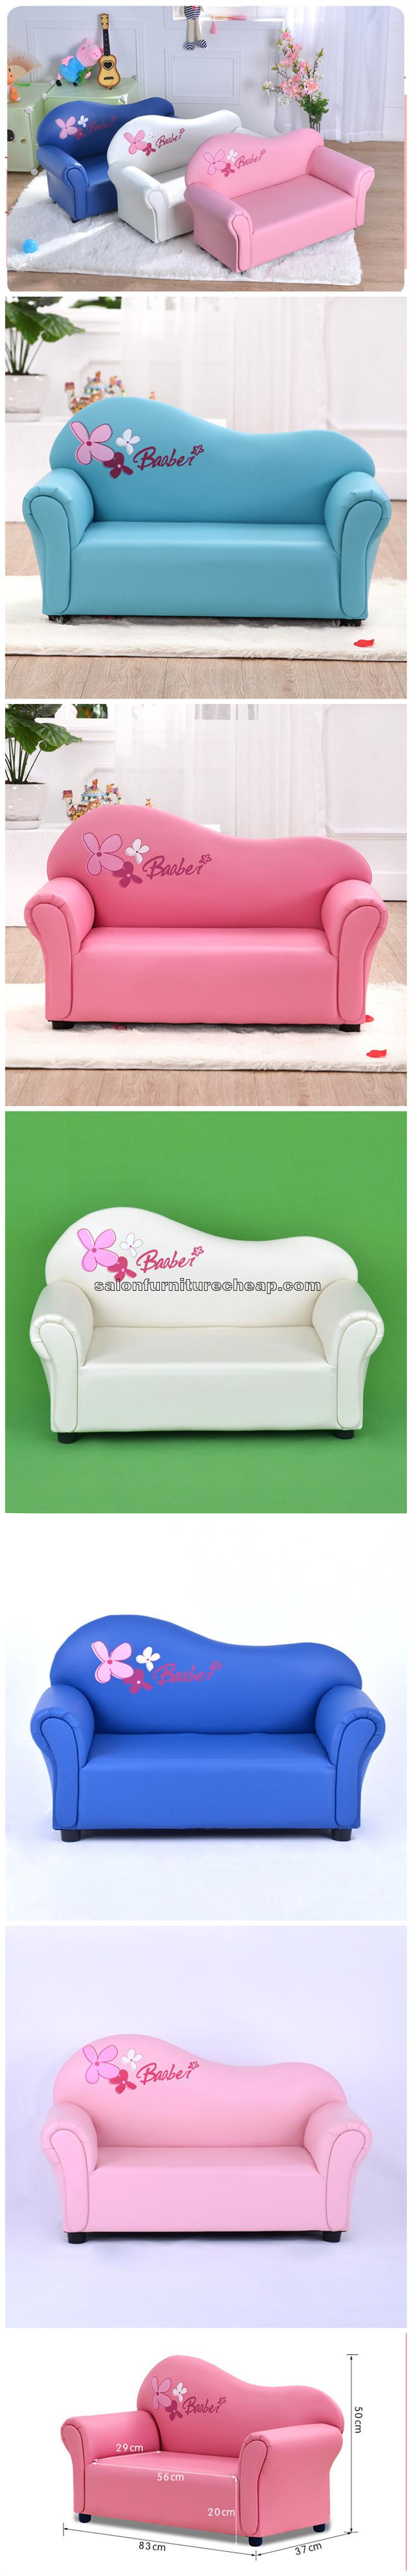 kids sofa bed on kids couch bed children s couch bed in 2020 kids couch couch bed baby sofa pinterest